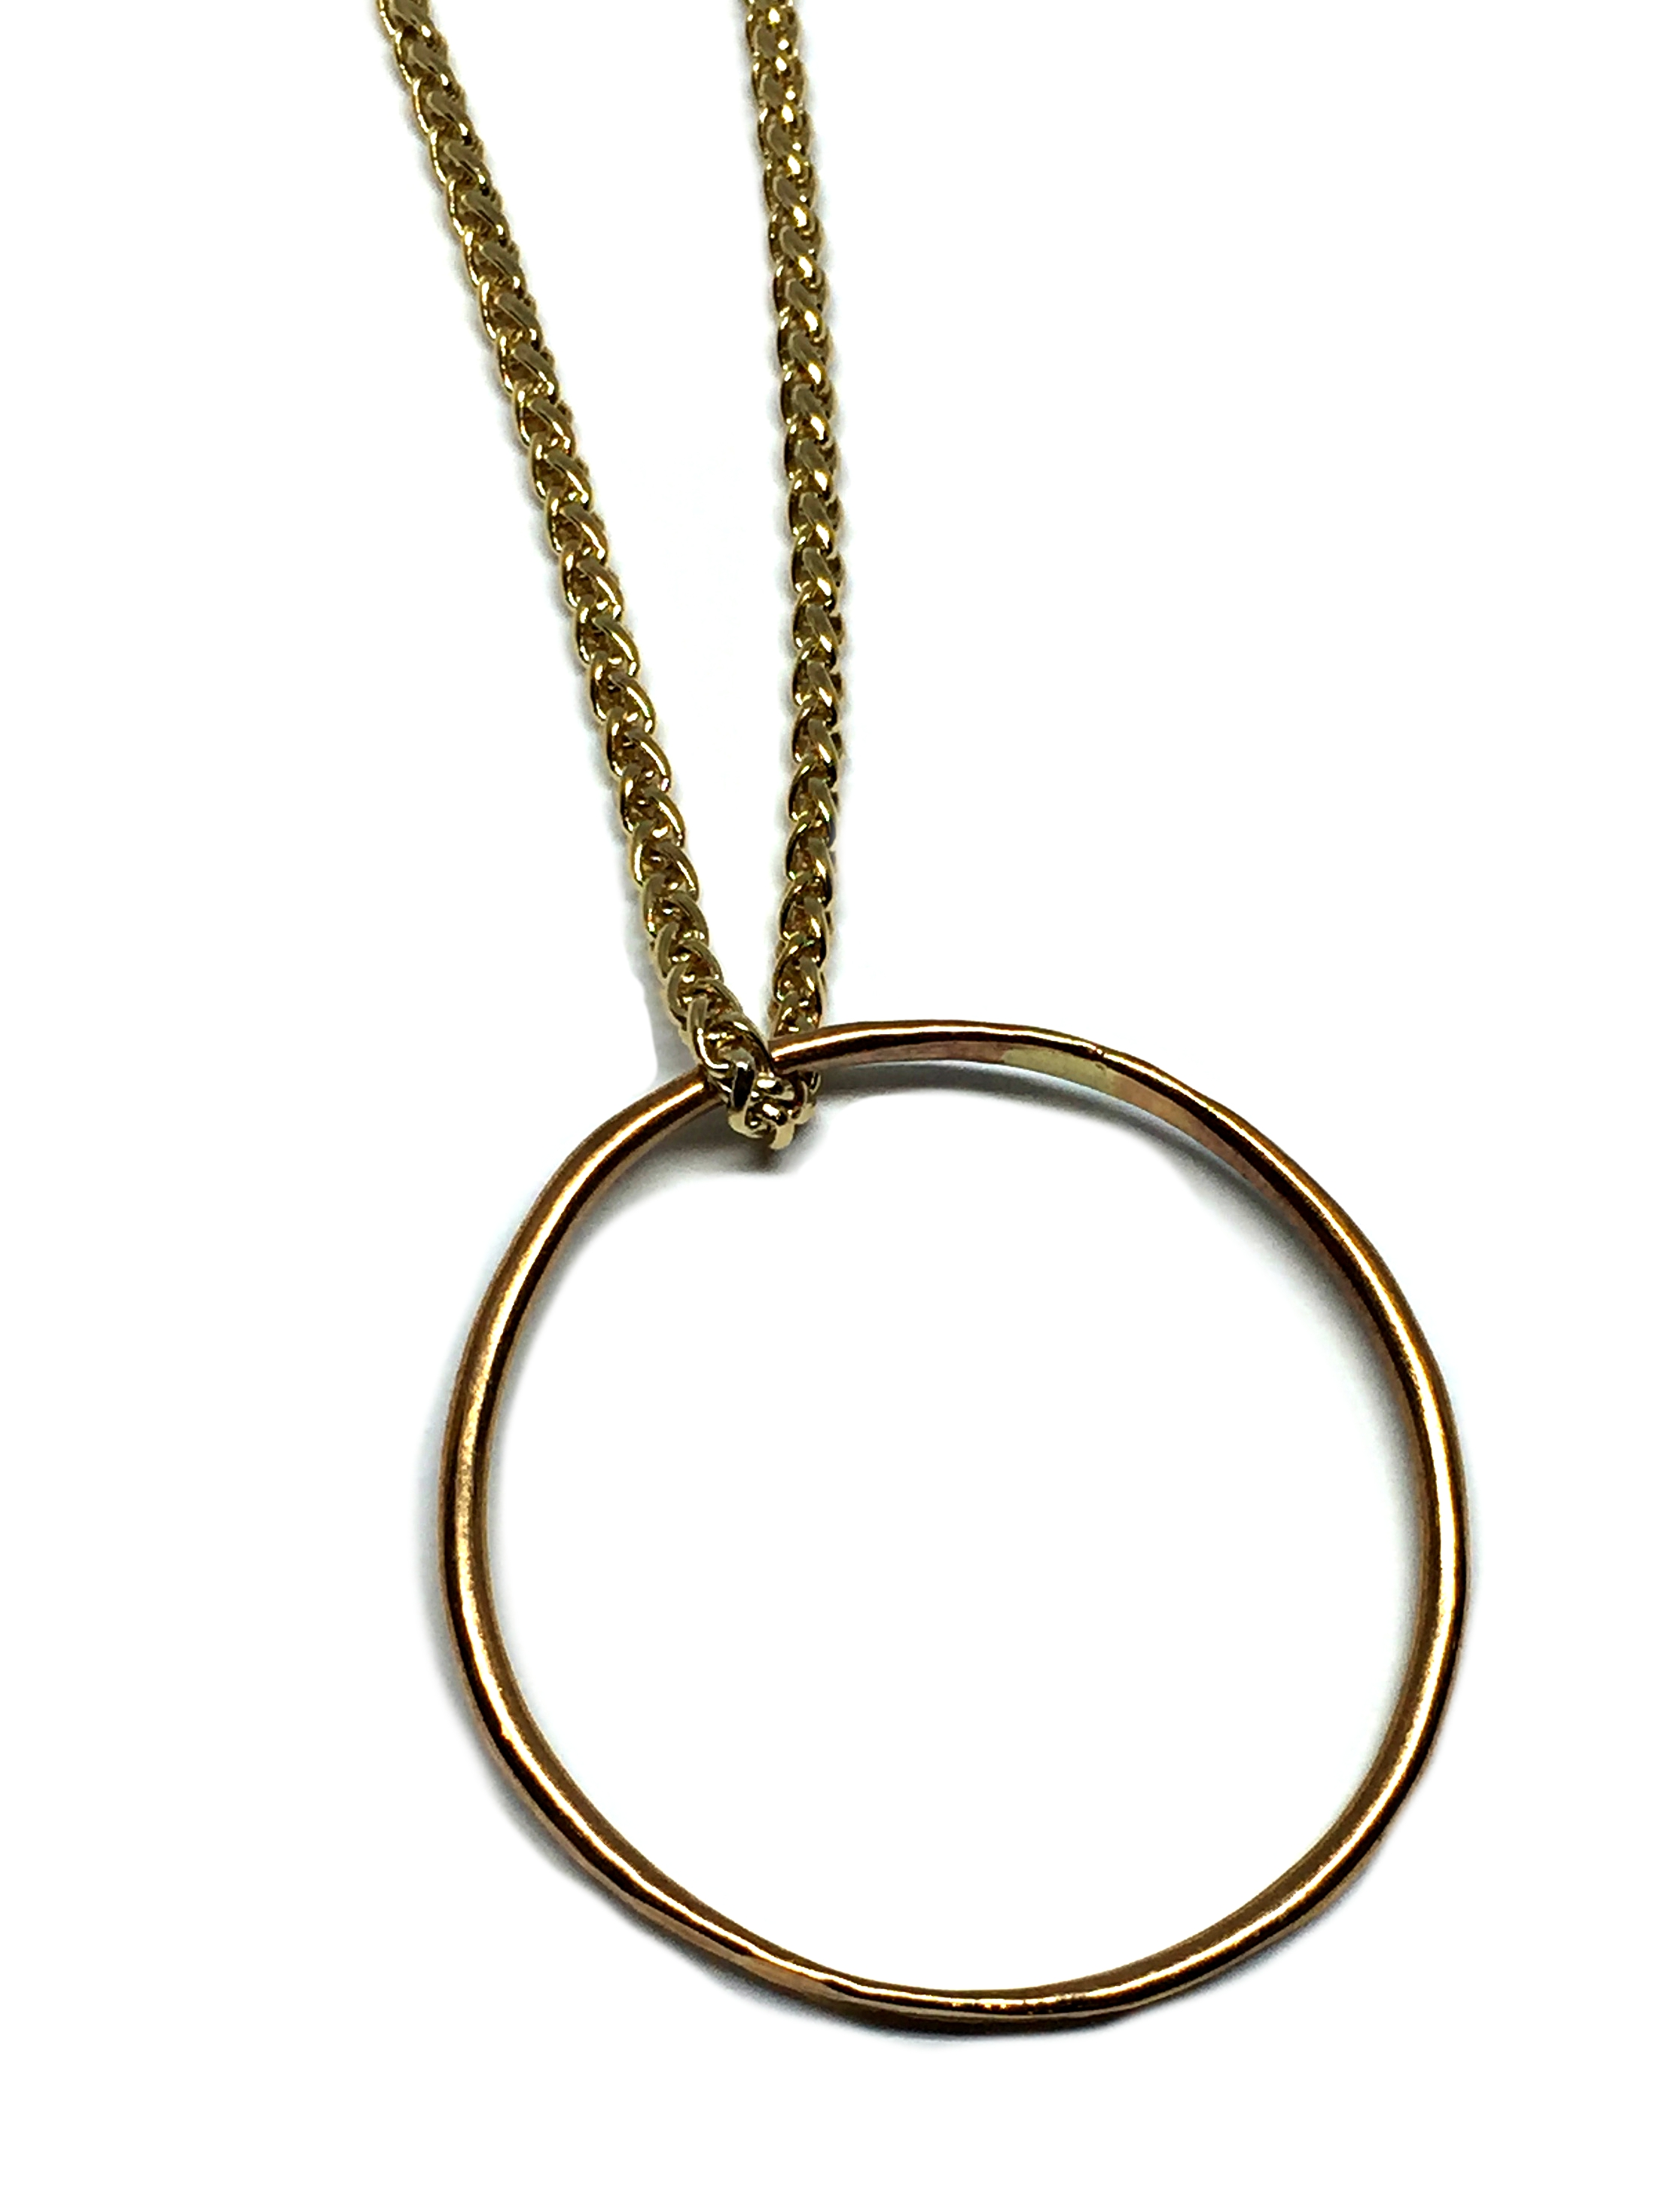 Bronze Sculpted Ring Pendant by Karyn Chopik   Effusion Art Gallery + Cast Glass Studio, Invermere BC